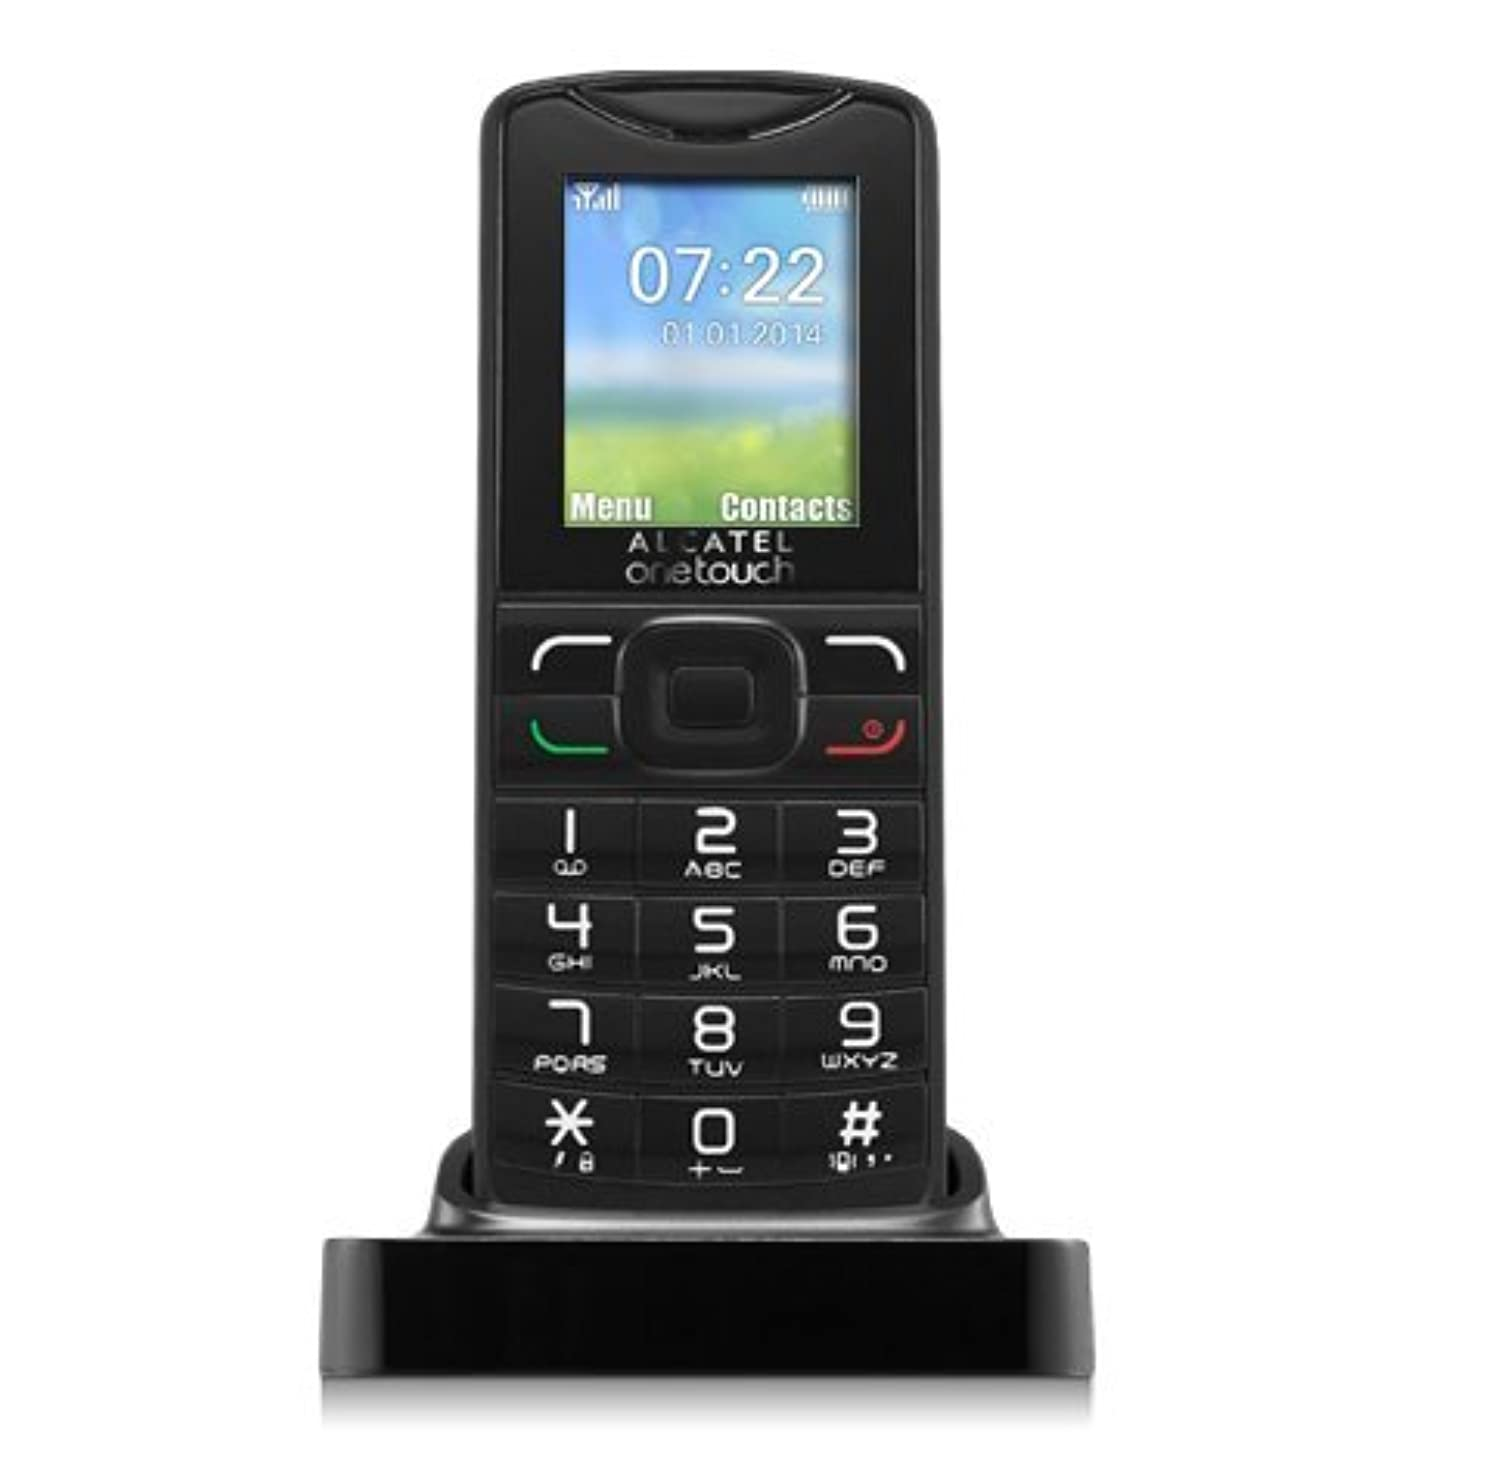 Cellphone Alcatel GSM 2G Unlocked F102 Large Buttons w/ Cradle SMS Radio FM